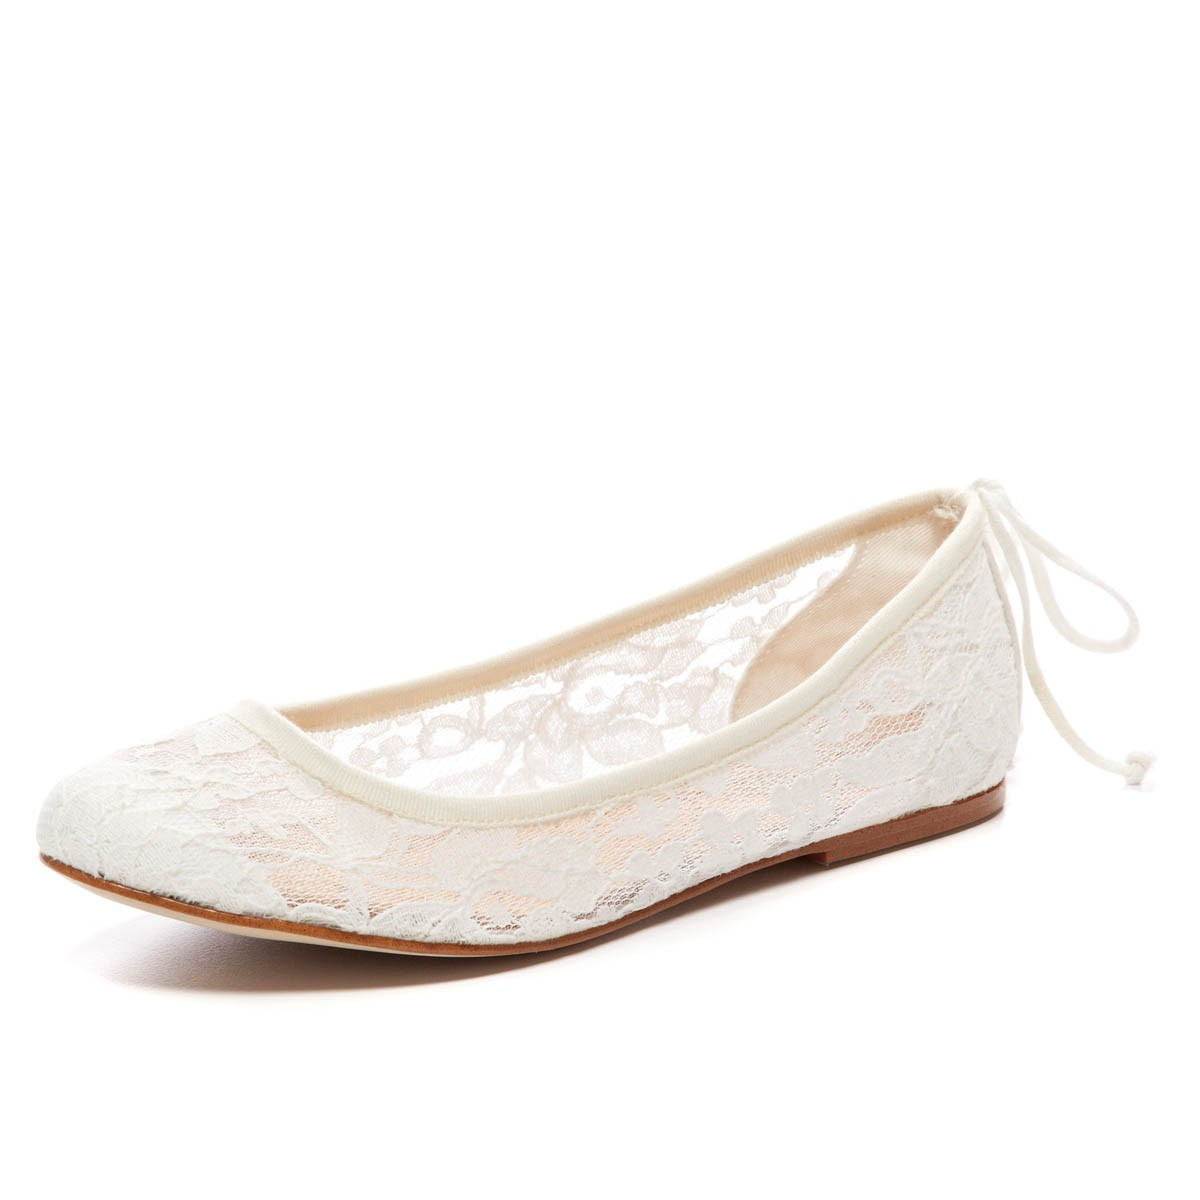 Soludos Chantilly Lace Ballet Flat in White  Lyst